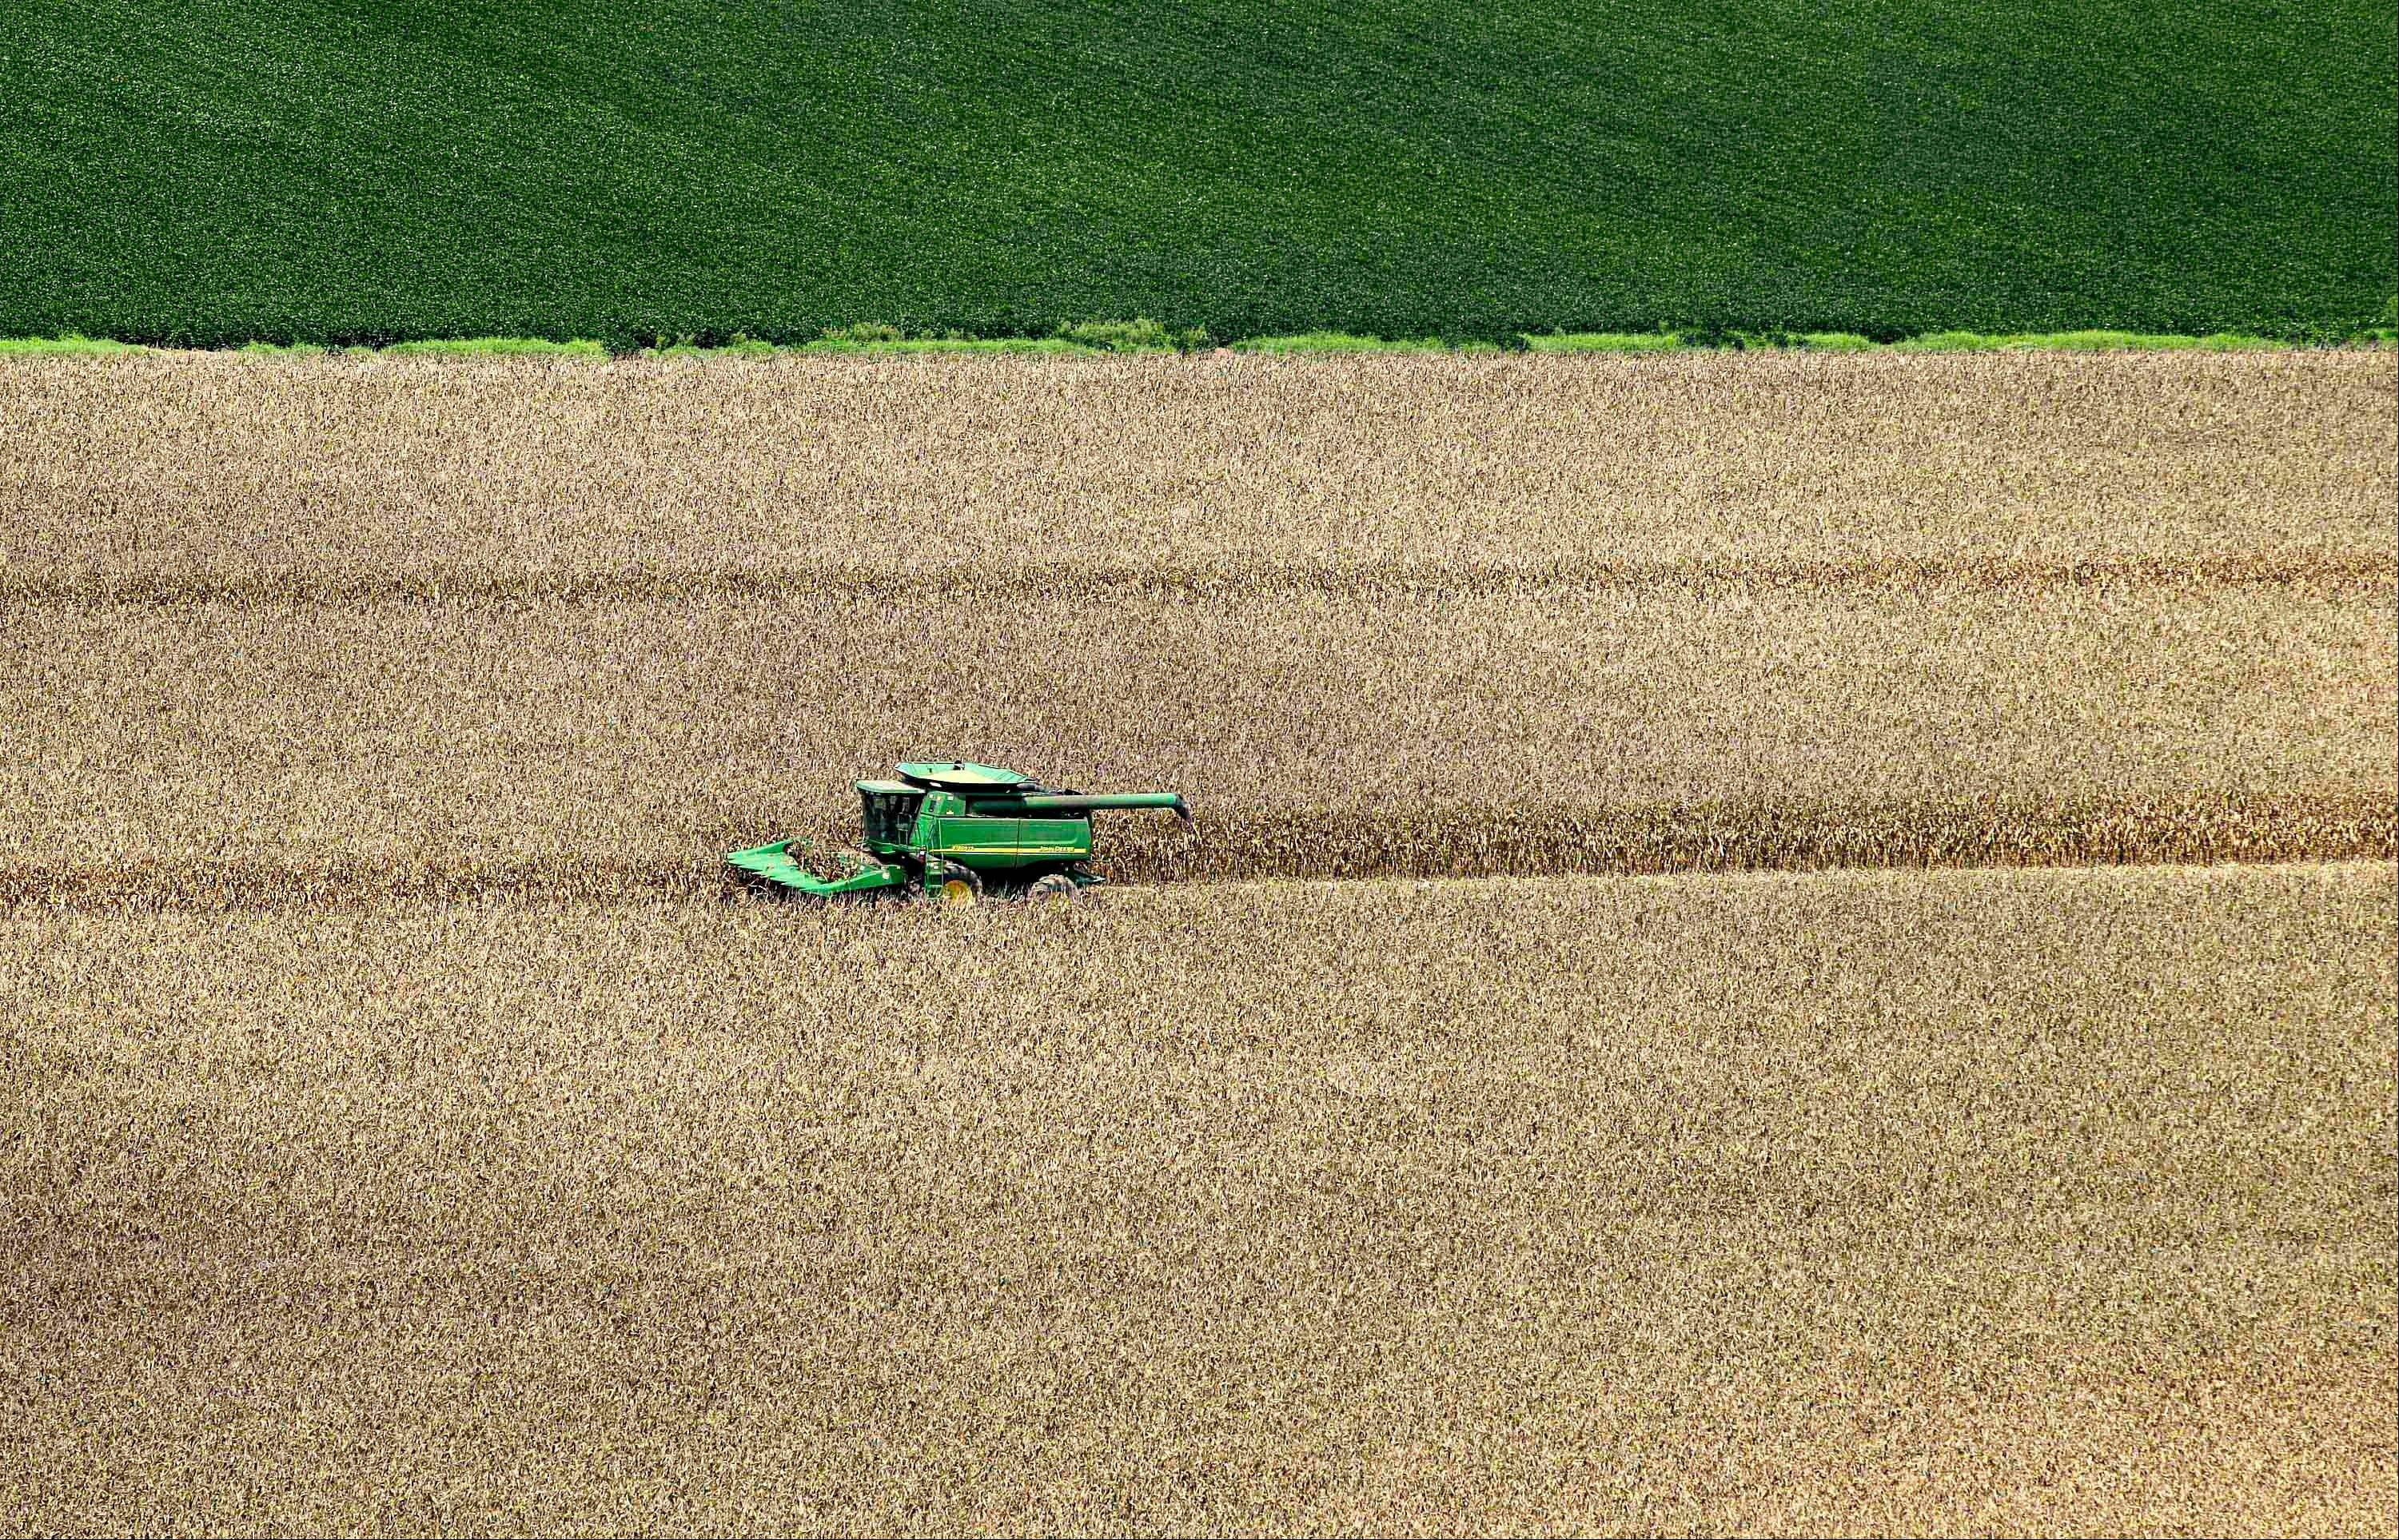 In this Aug. 16, 2012 photo, a combine harvests corn next to another field where soybeans grow near Coy, Ark. Weekend rain brought some relief to farmers in the nationís midsection as they contend with the worst drought in the U.S. in decades.